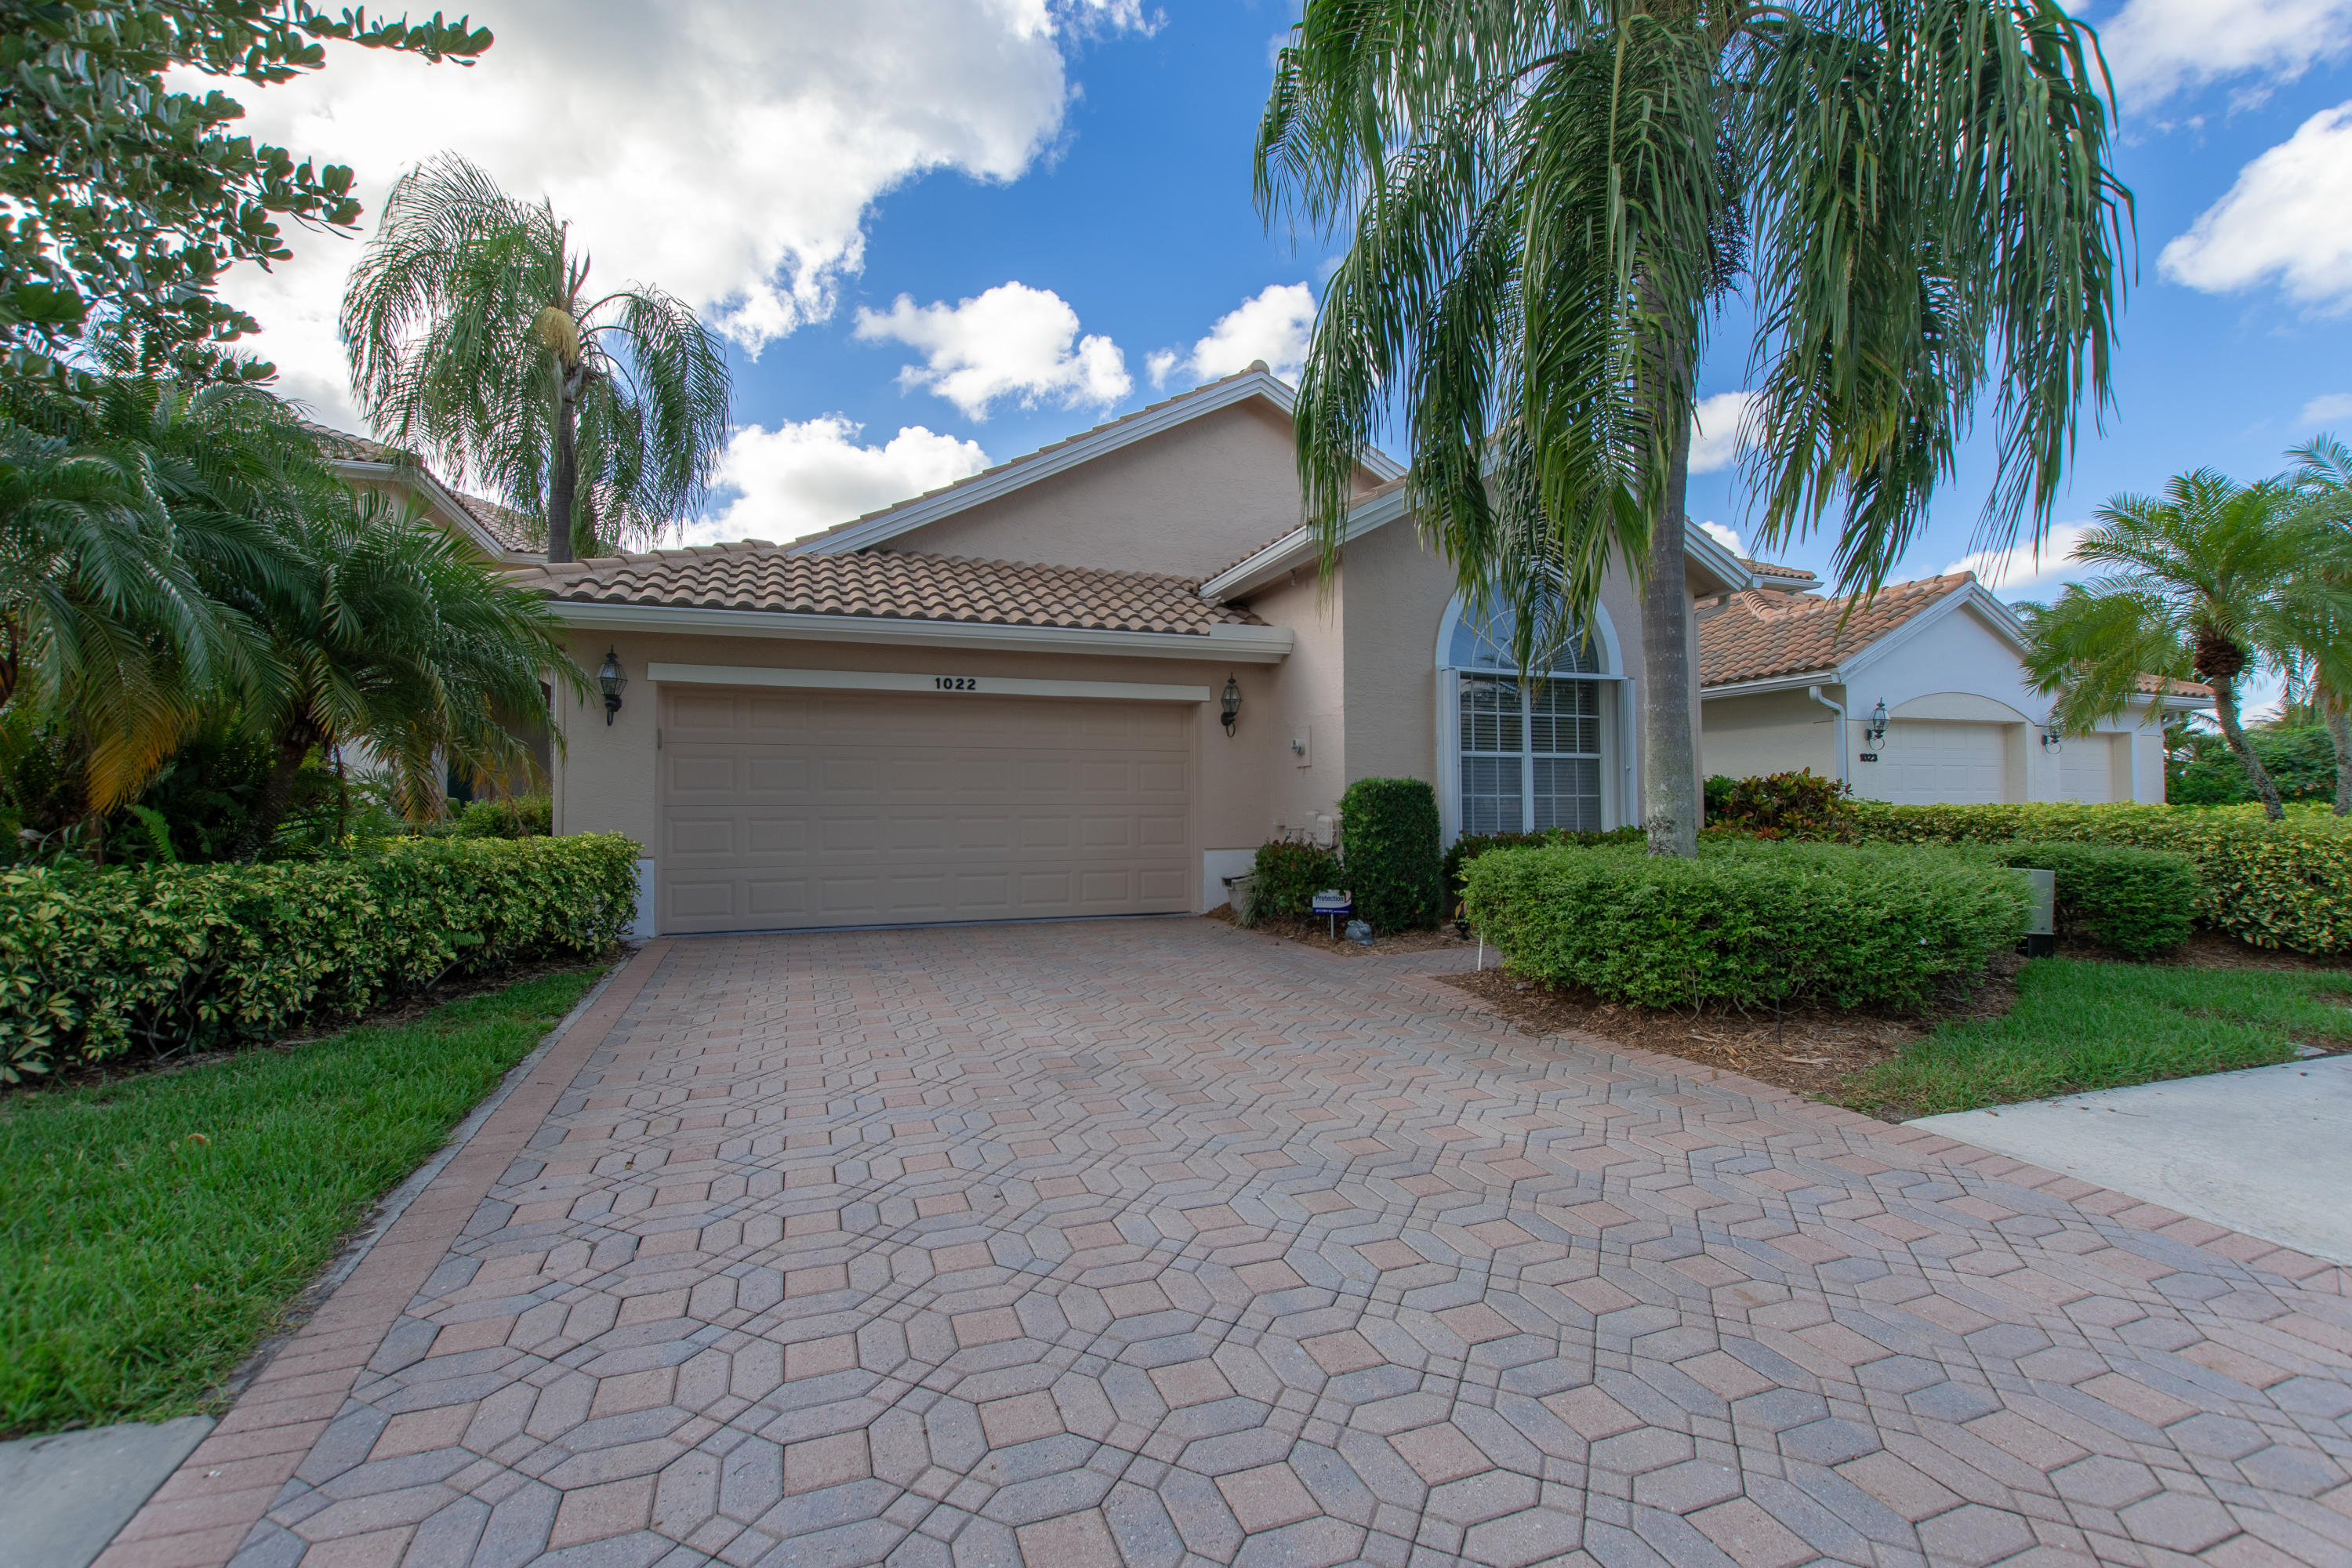 1022 Diamond Head Way, Palm Beach Gardens, Florida 33418, 3 Bedrooms Bedrooms, ,3 BathroomsBathrooms,Single Family,For Rent,PGA NATIONAL,Diamond Head,1,RX-10613180